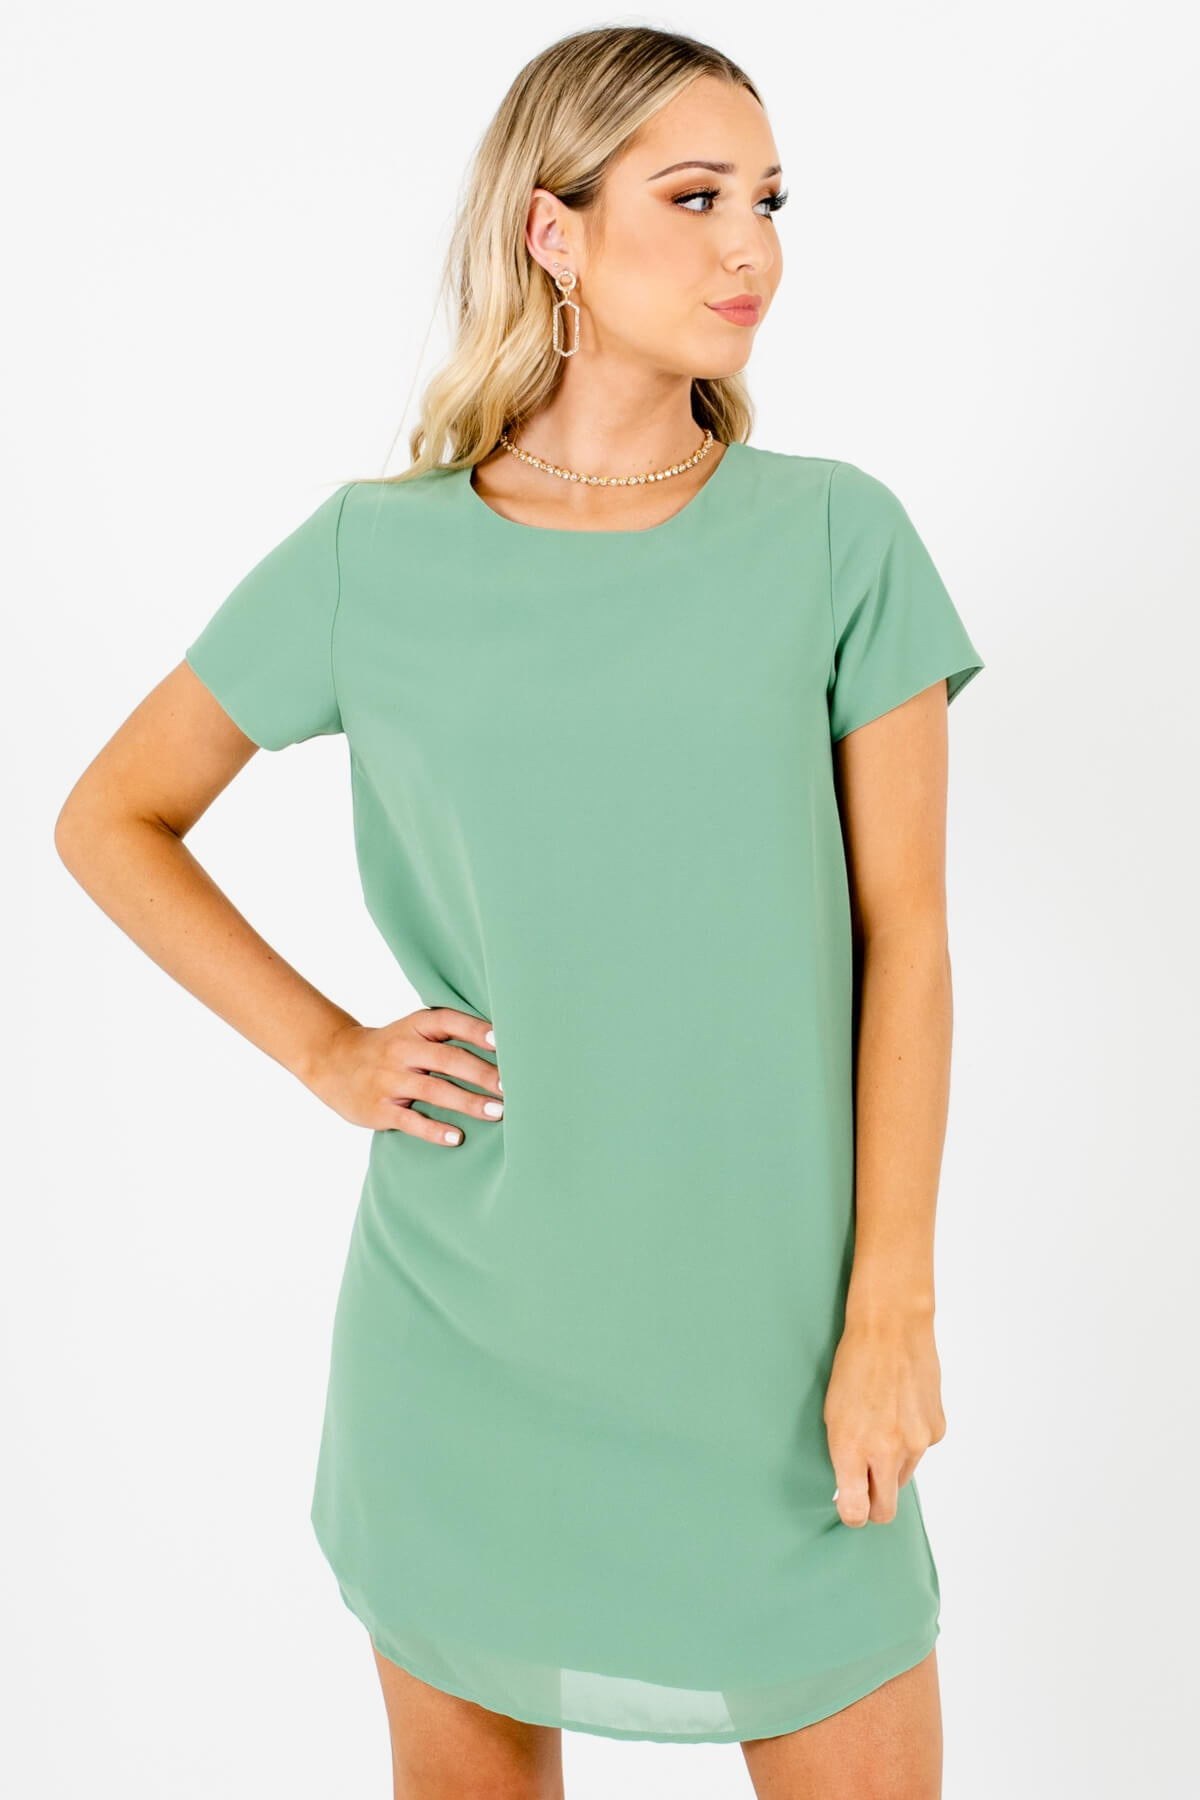 Light Green Straight Silhouette Short Sleeve Mini Dresses for Women